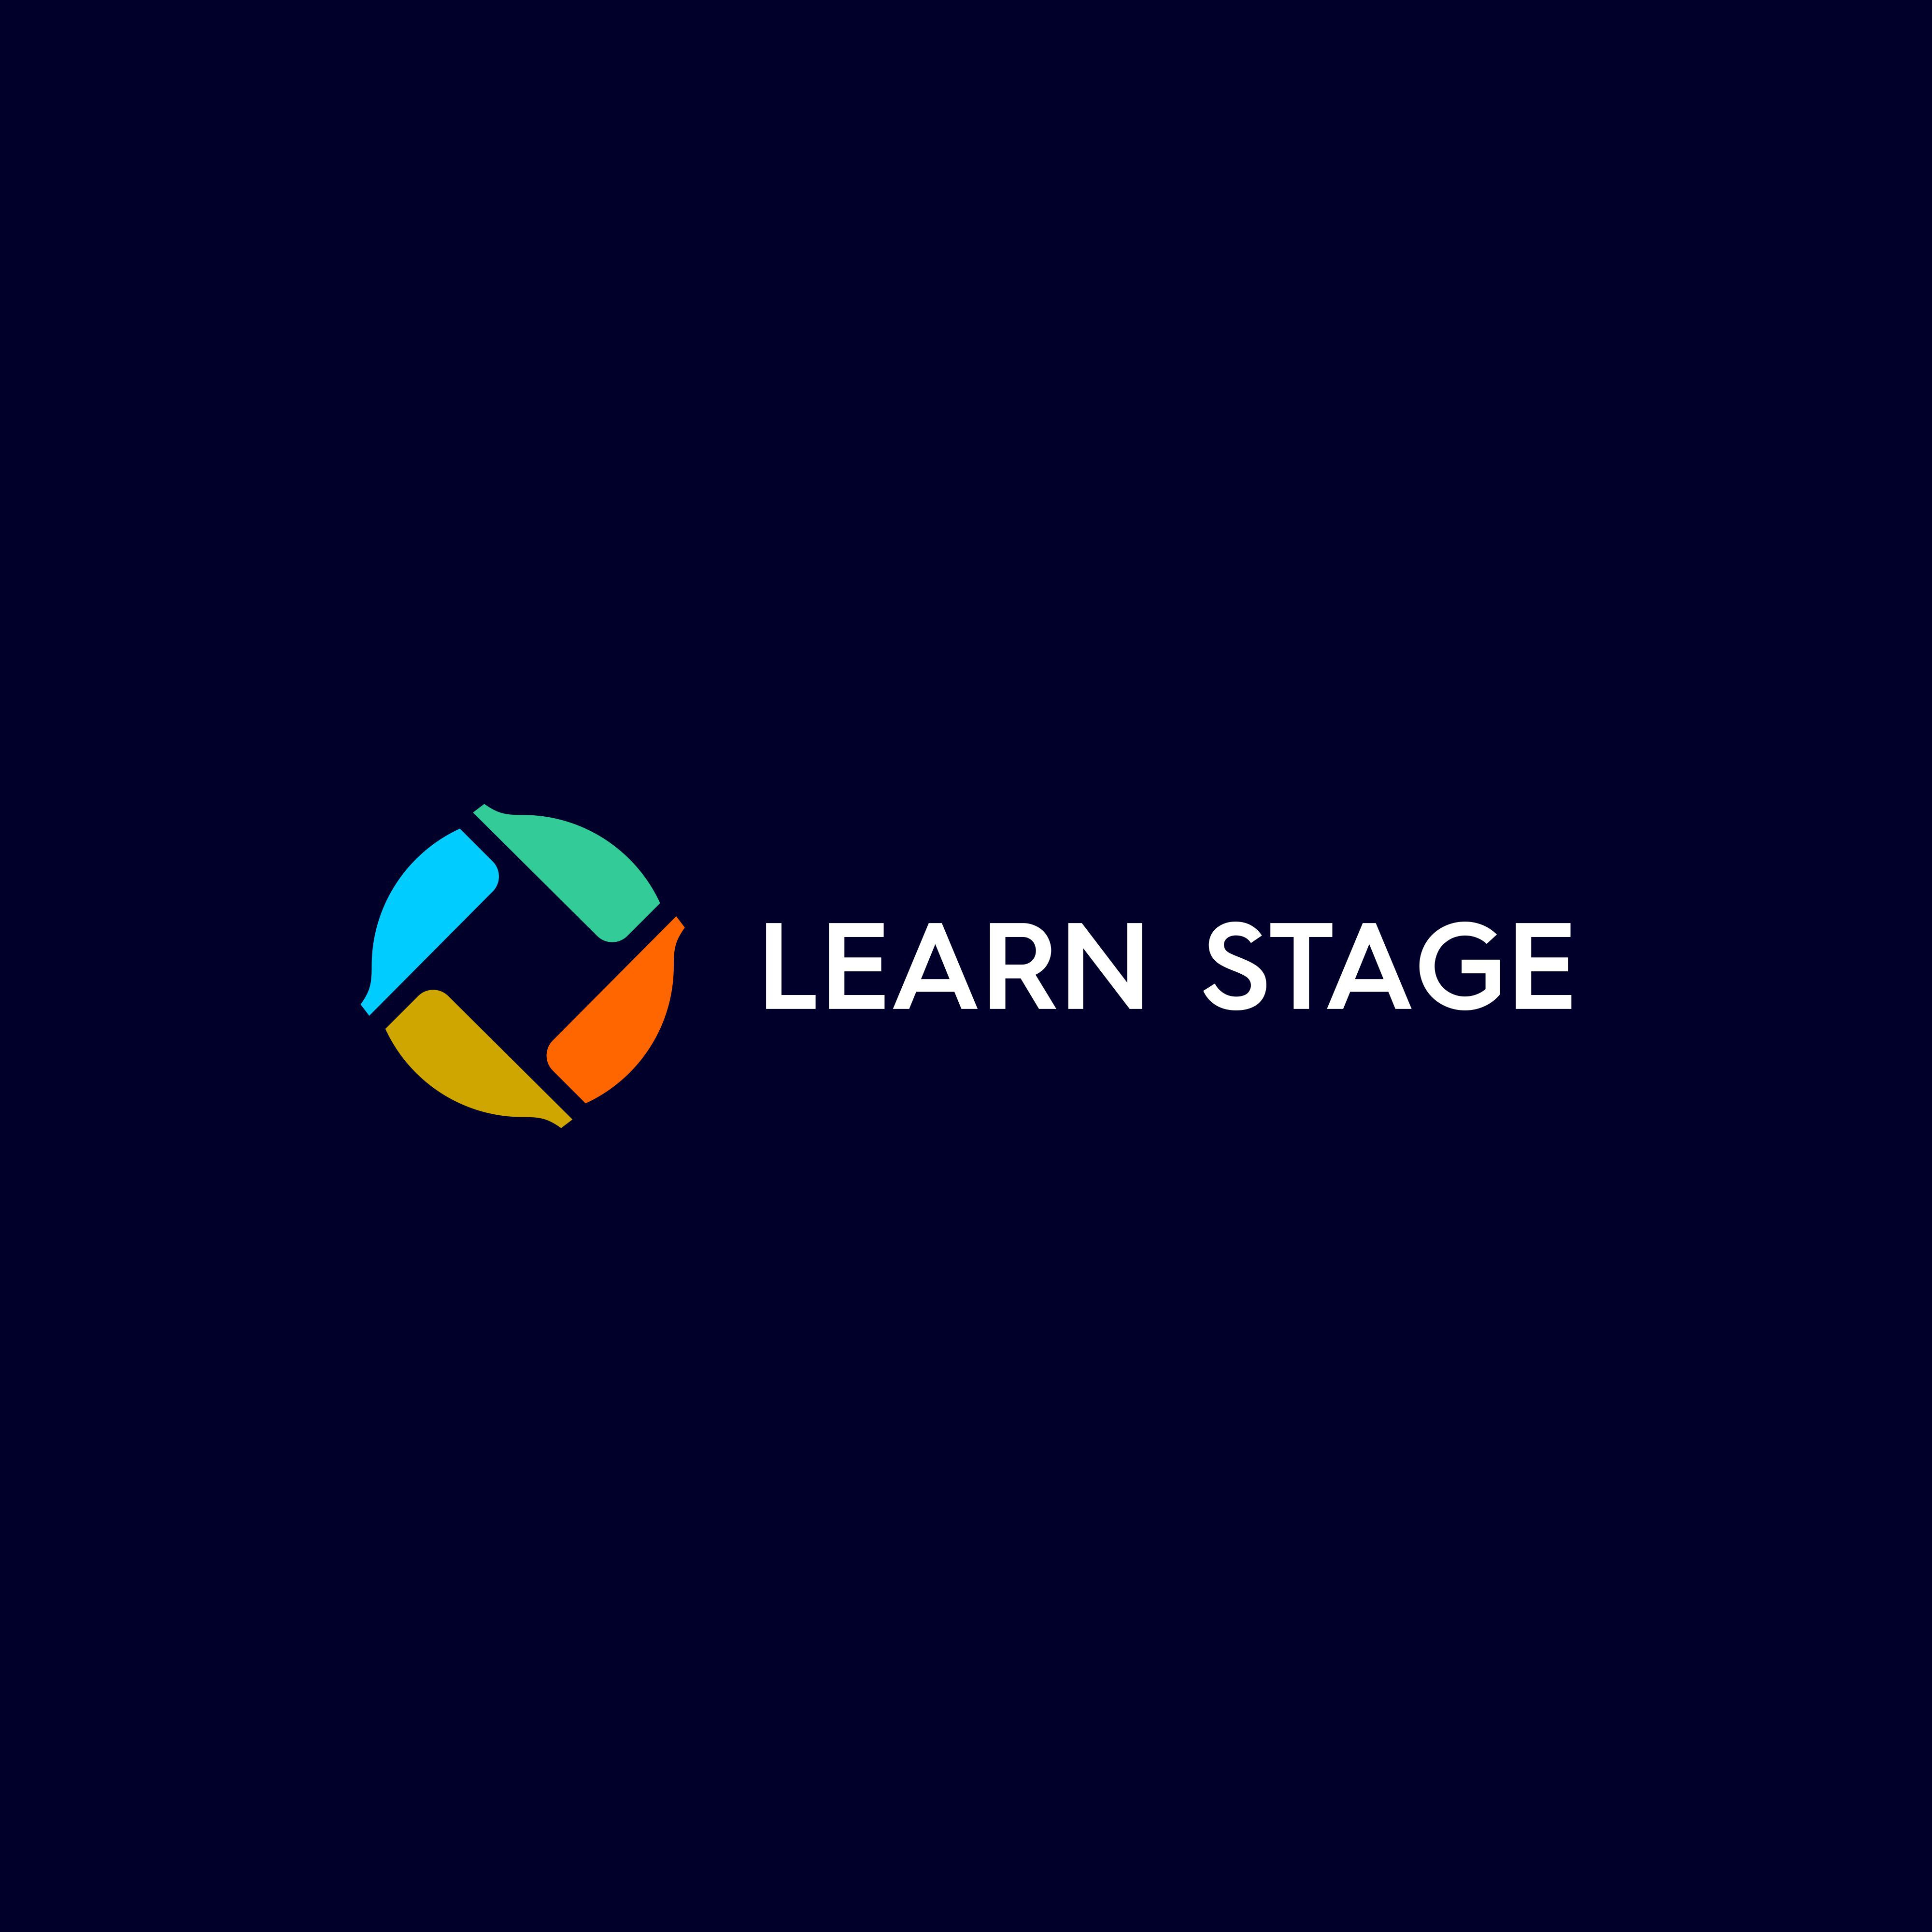 Create logo for educational software